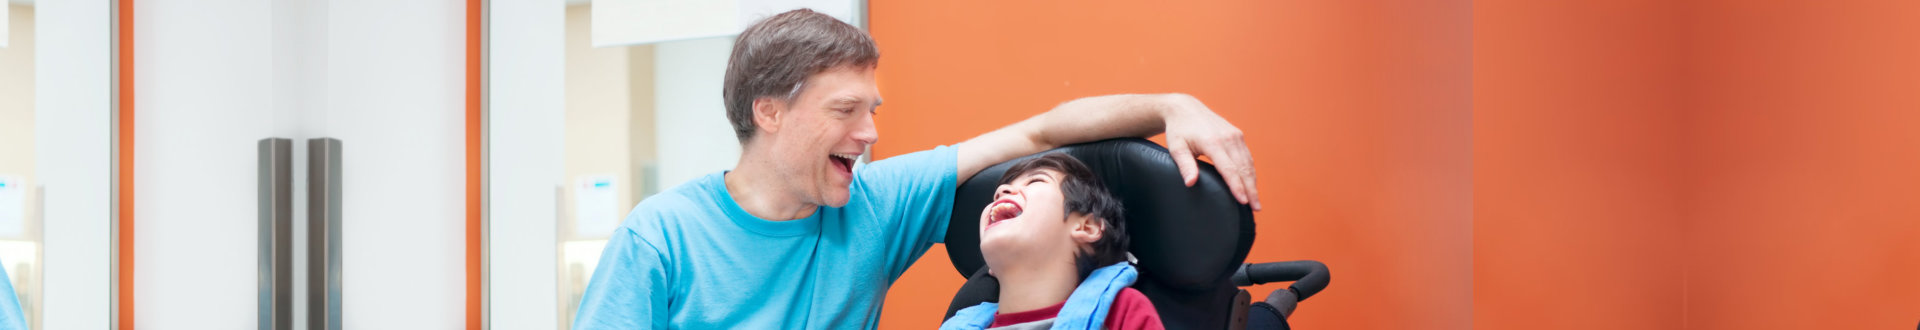 man and boy laughing together